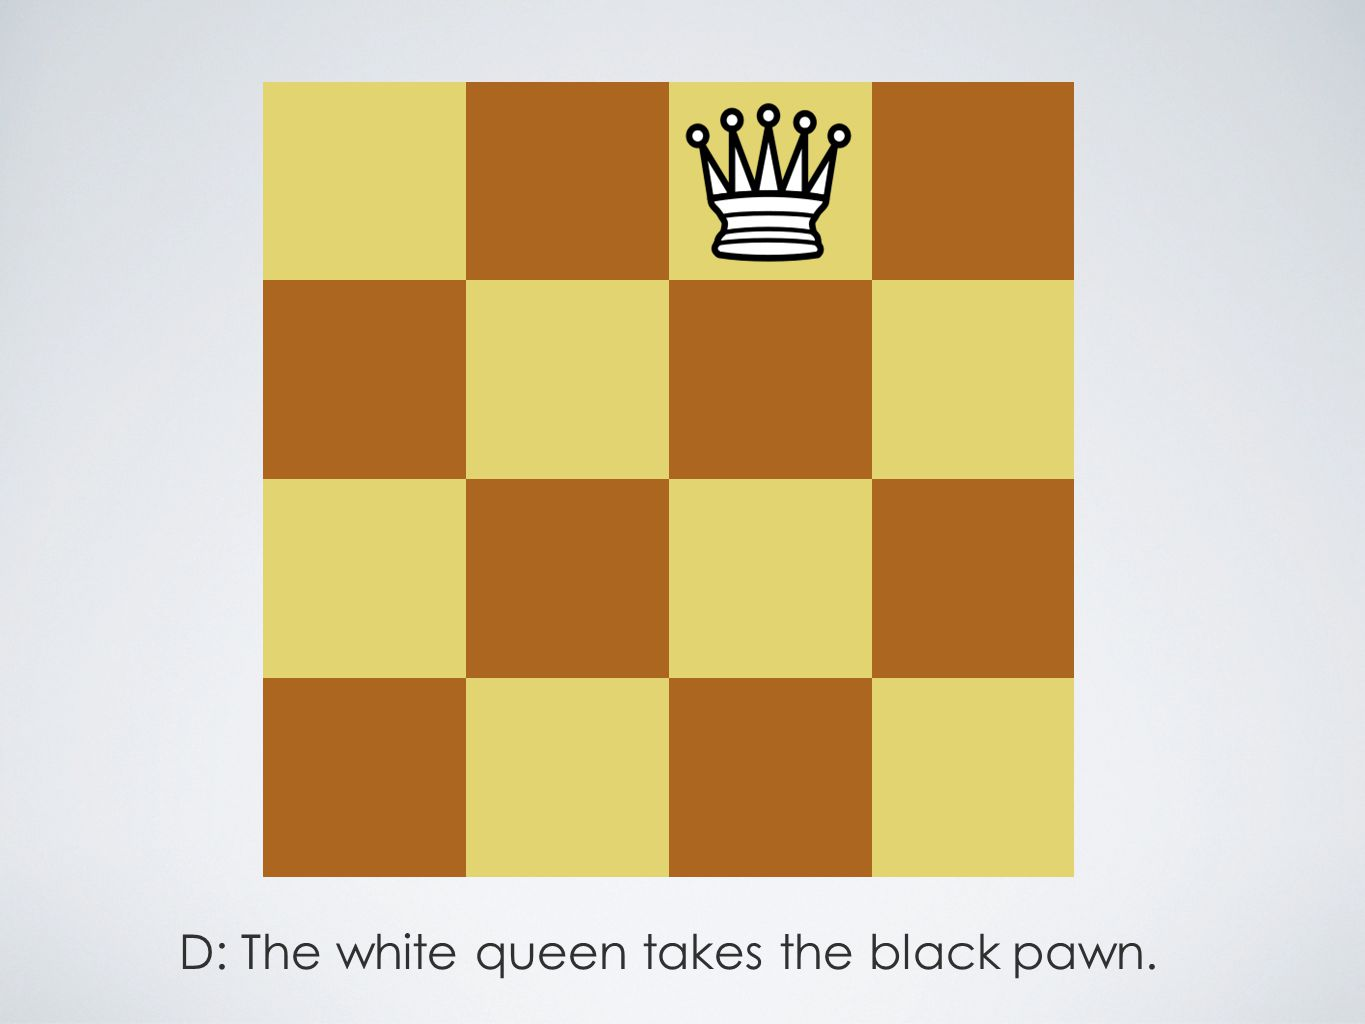 D: The white queen takes the black pawn.